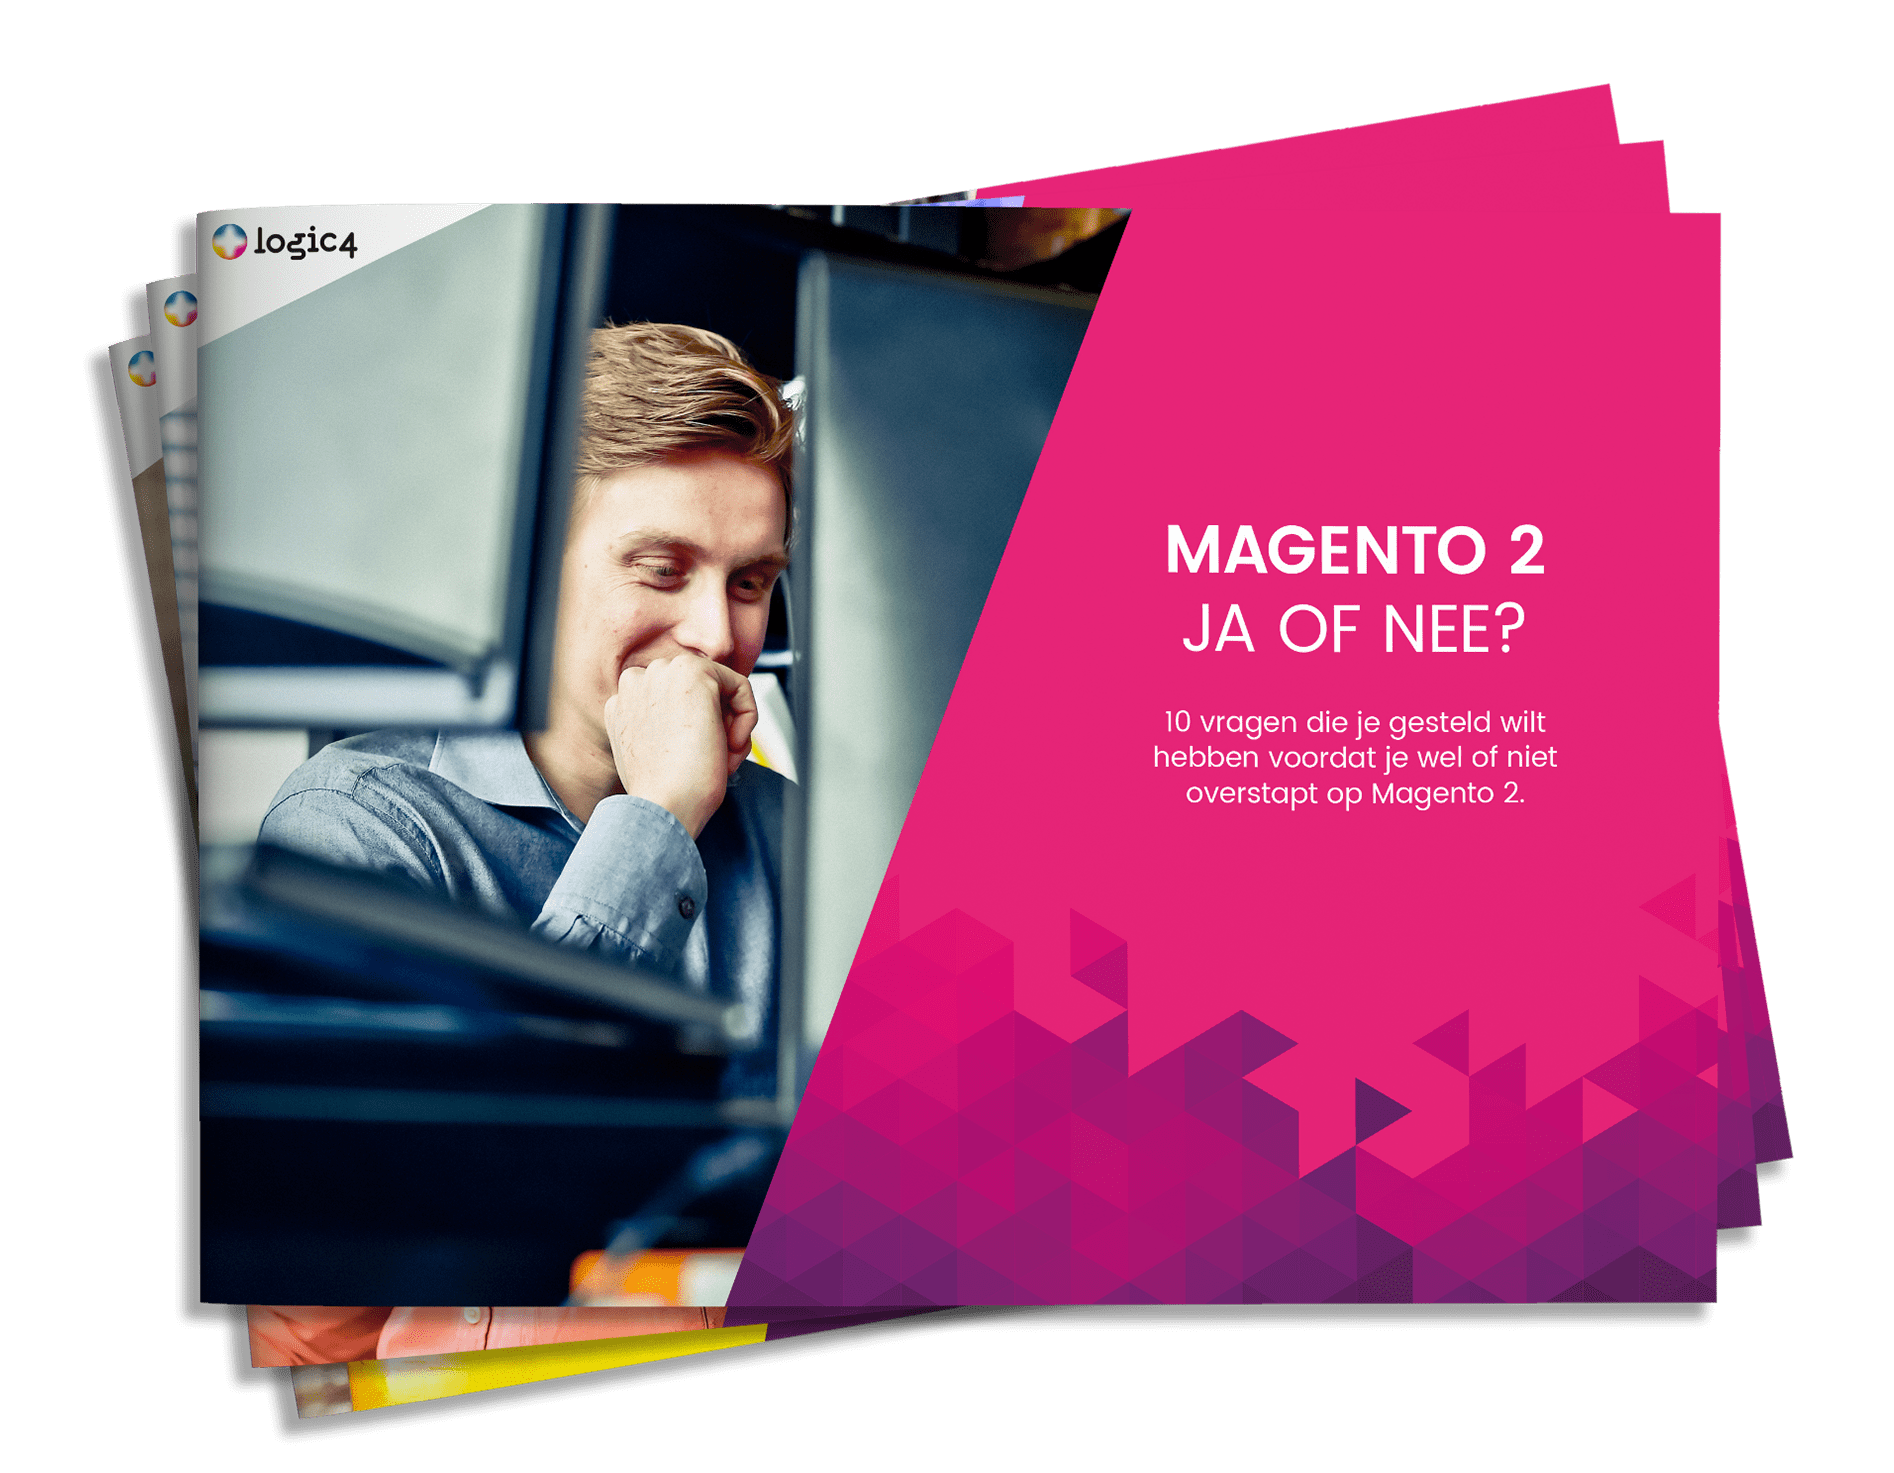 Whitepaper Magento 2 ja of nee